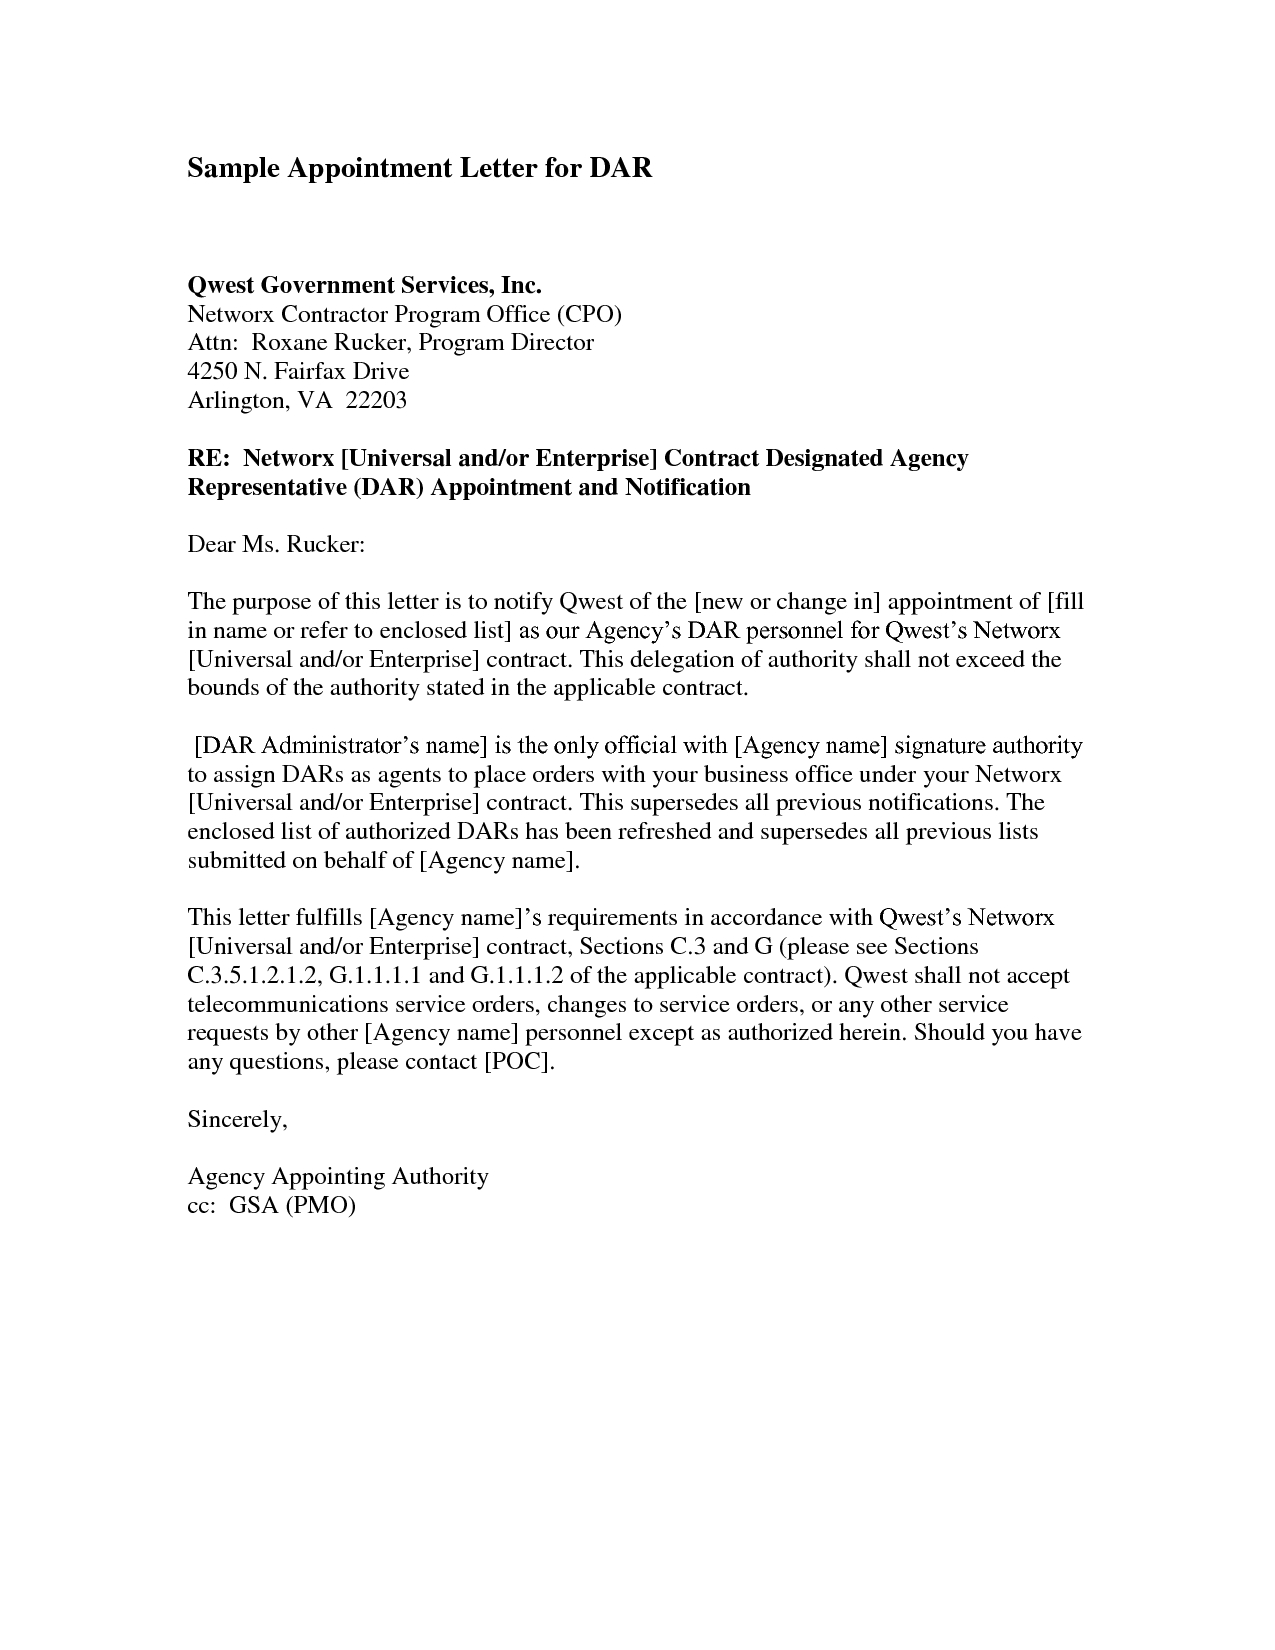 Cease and Desist Collection Agency Letter Template - Trustee Appointment Letter Director Trustee is Appointed or